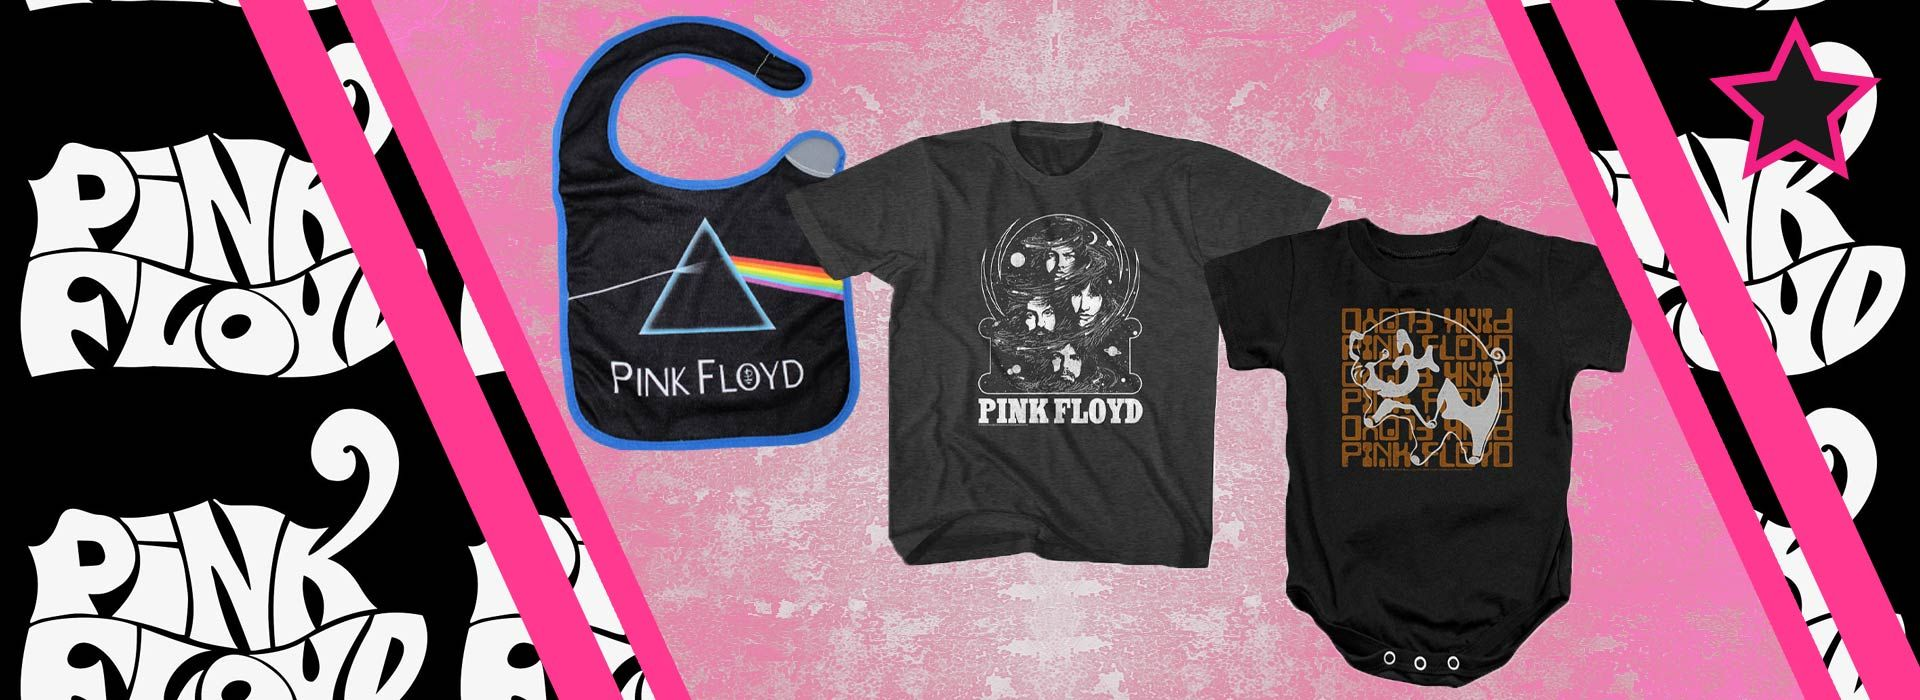 Pink Floyd kids and baby clothes.